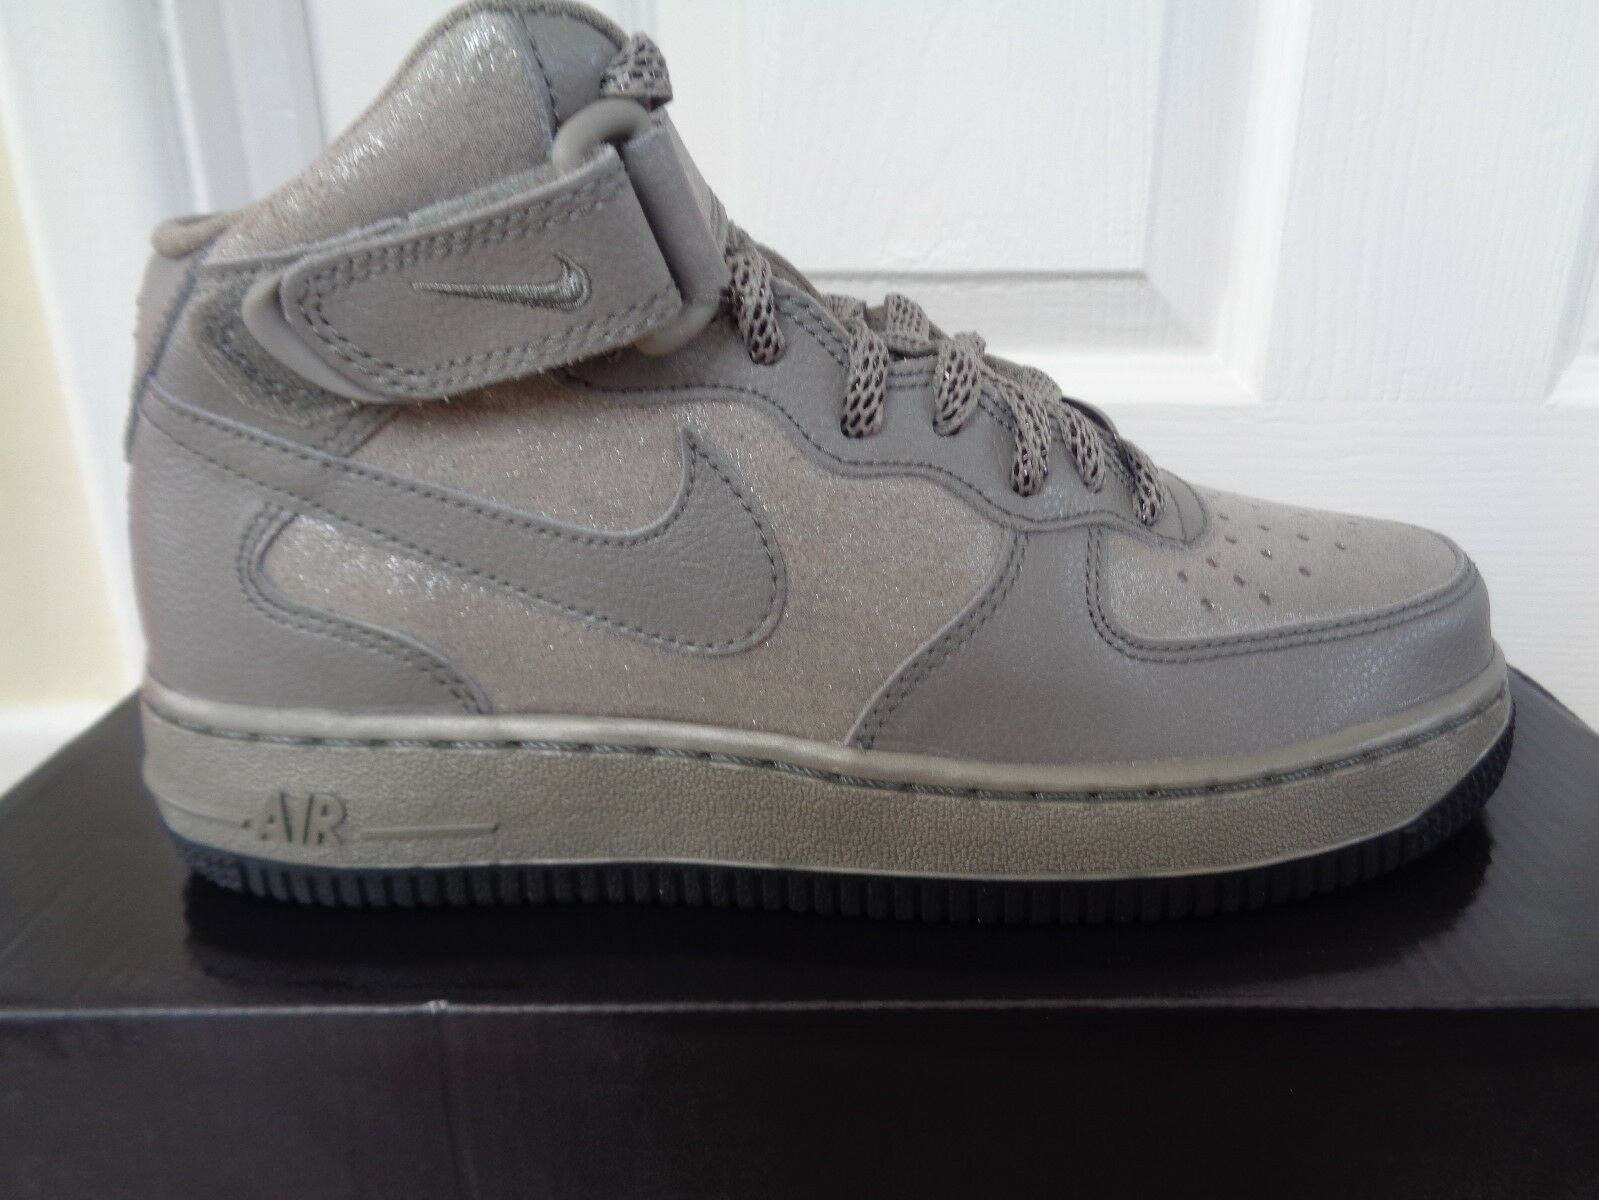 Nike Air Force 1 '07 Mid trainers PRM Femme trainers Mid 805292 002 uk 4 eu 37.5 us 6.5 NEW 7f3b1f